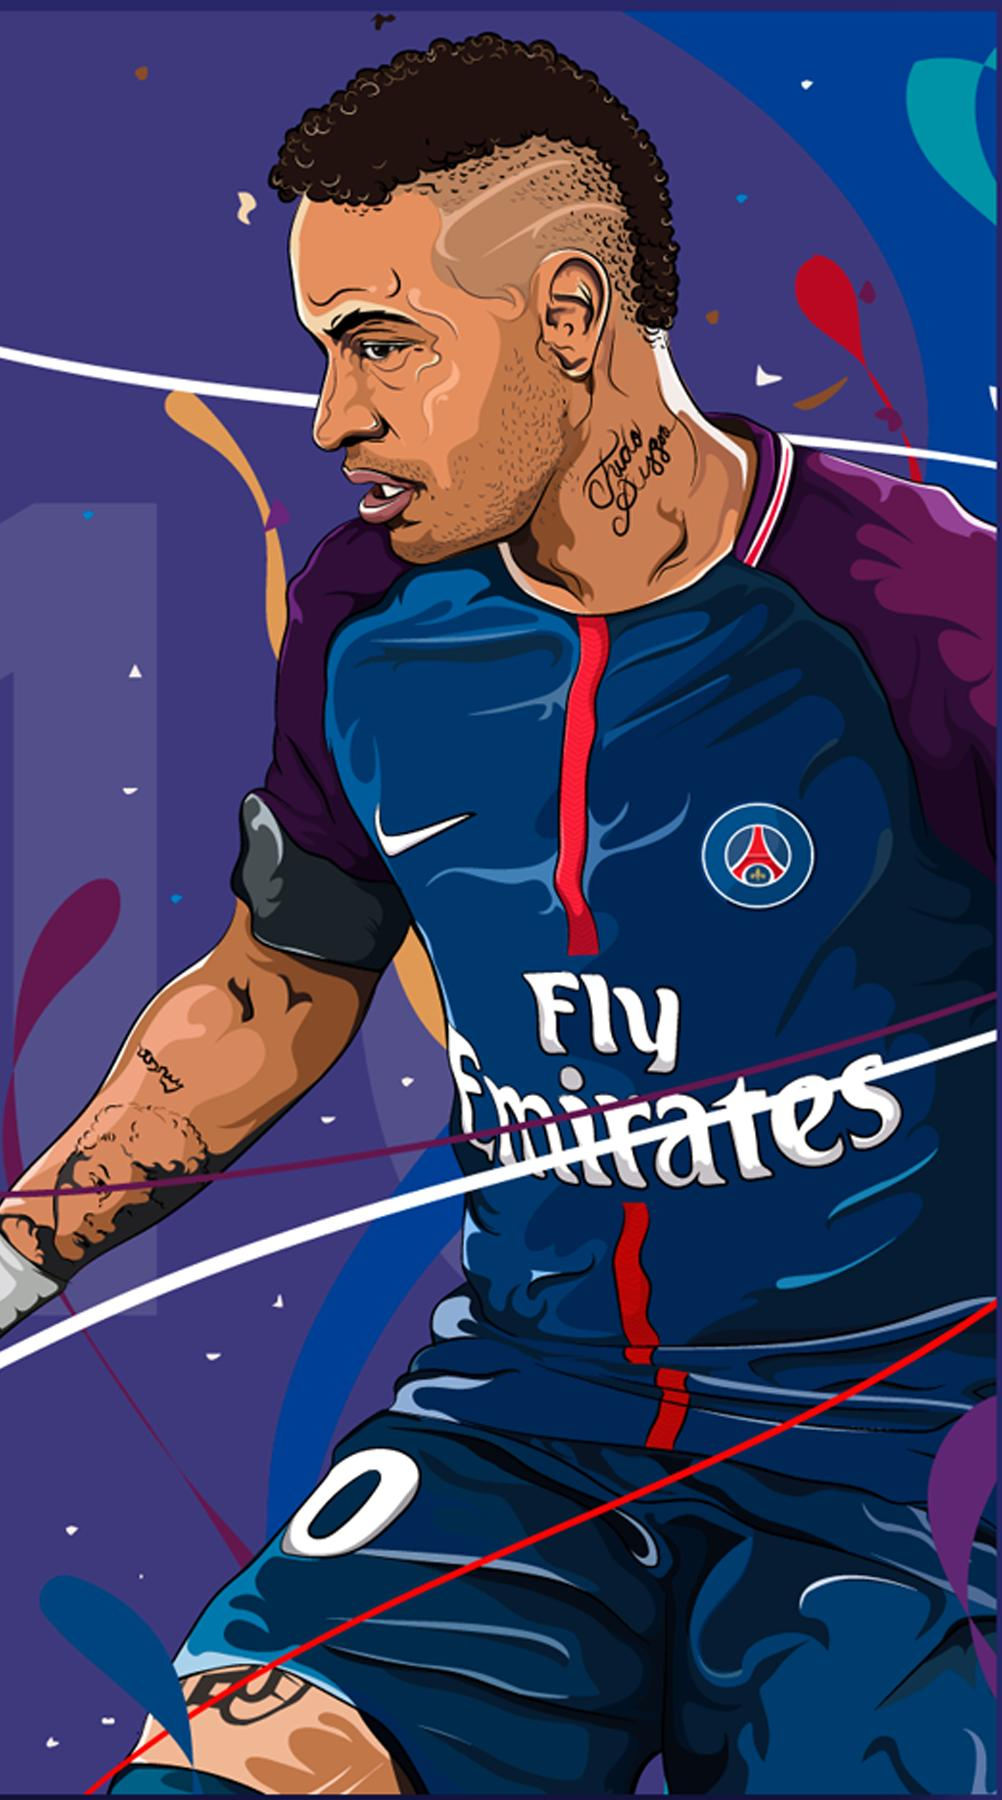 Neymar JR Wallpapers HD 4K 2018 for Android - APK Download